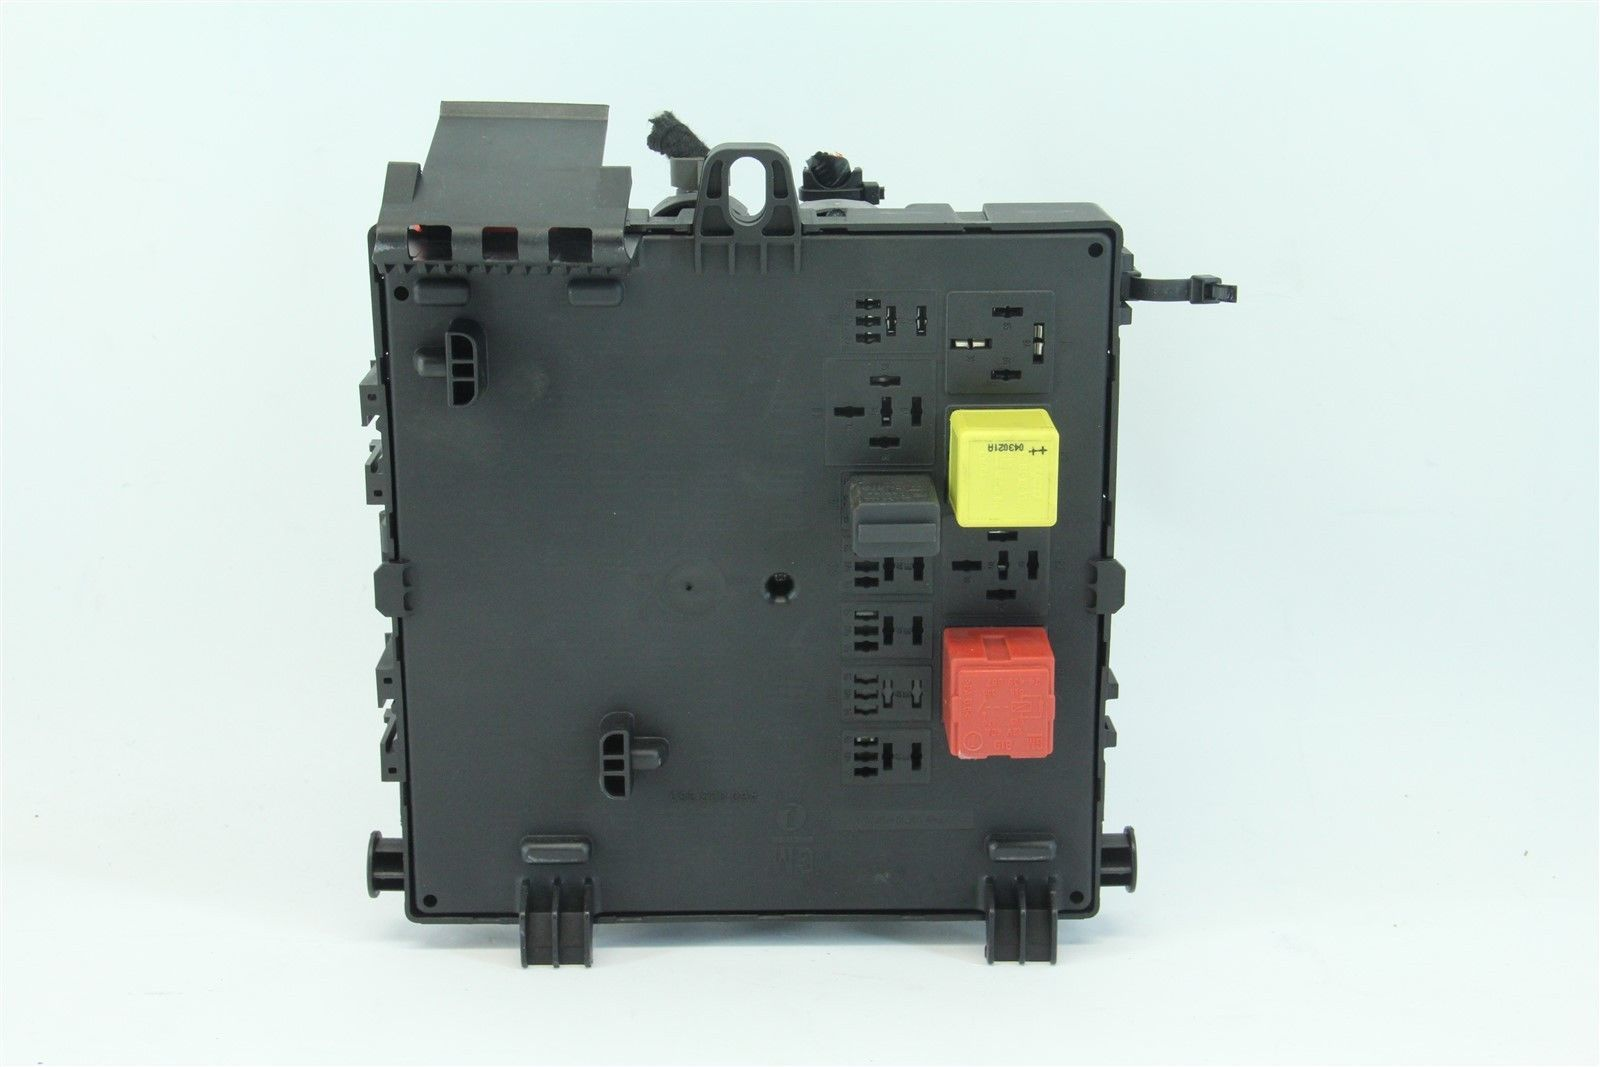 Saab 9-3 Interior Rear Fuse Box 12805847 03 04 05 06 07 ...